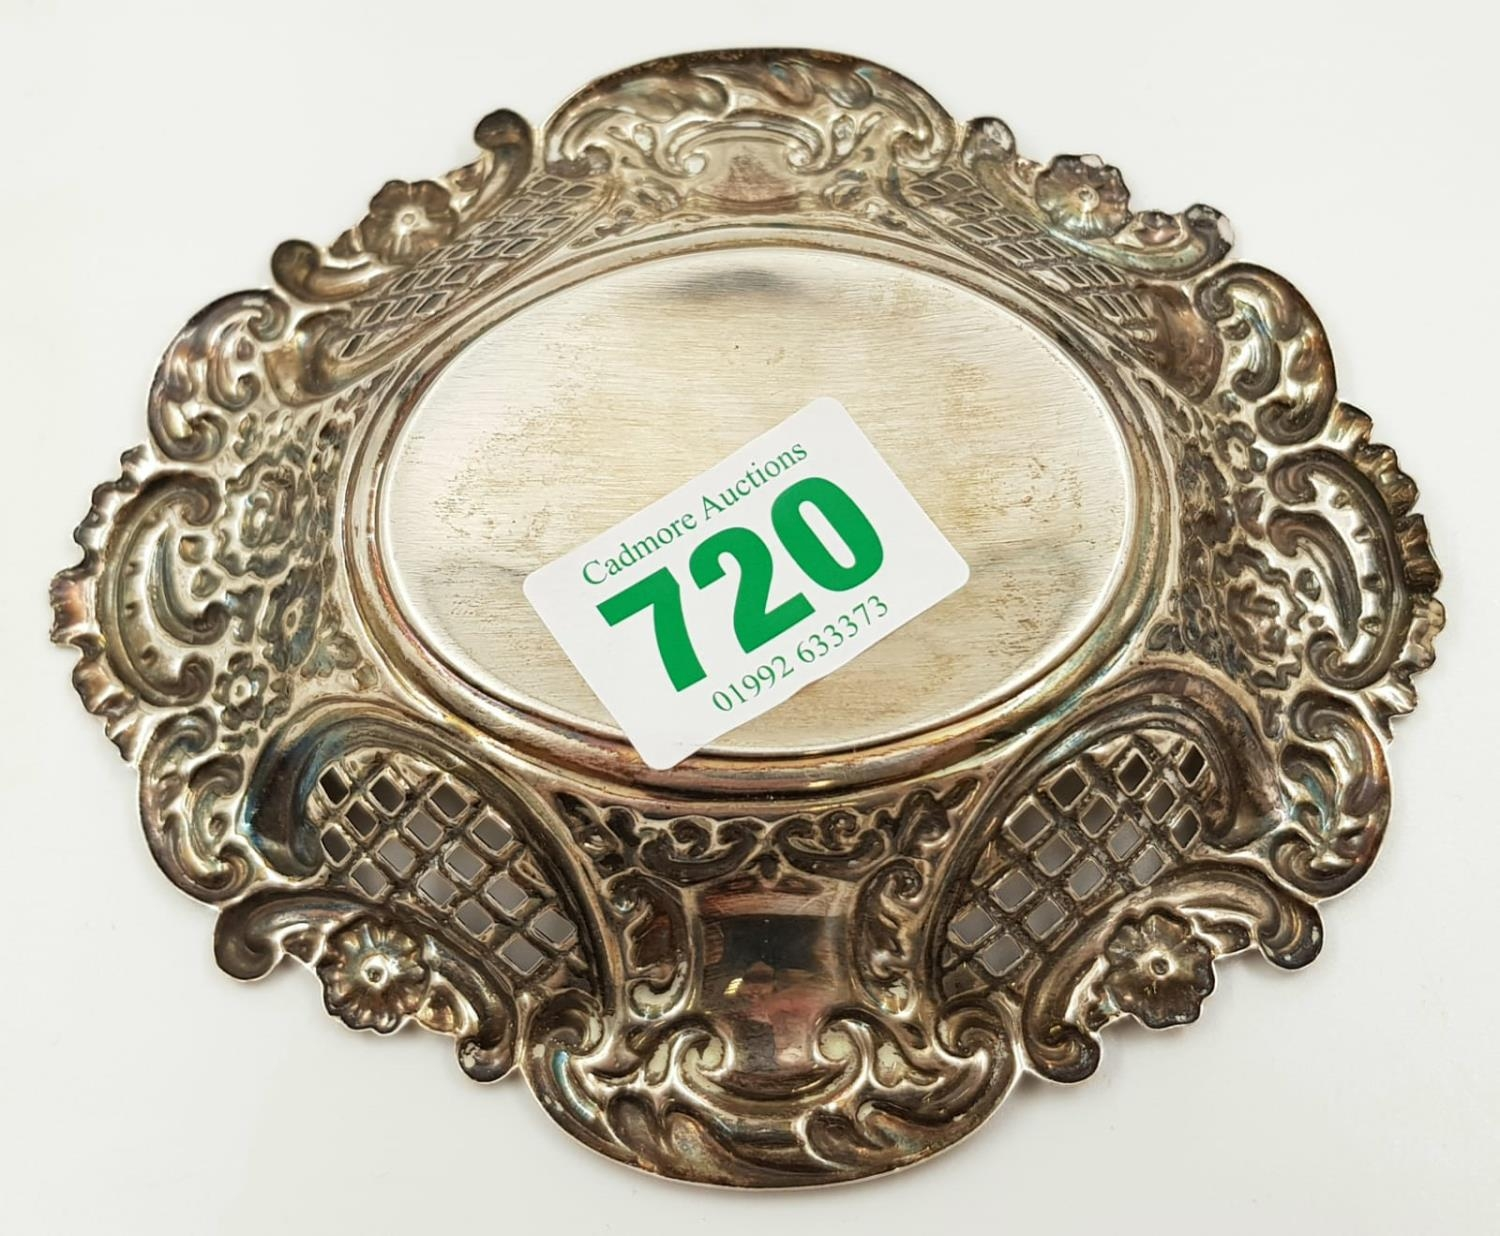 A sterling silver decorative Bon Bon dish. Made in Birmingham. Total weigh is 80g. - Image 2 of 2